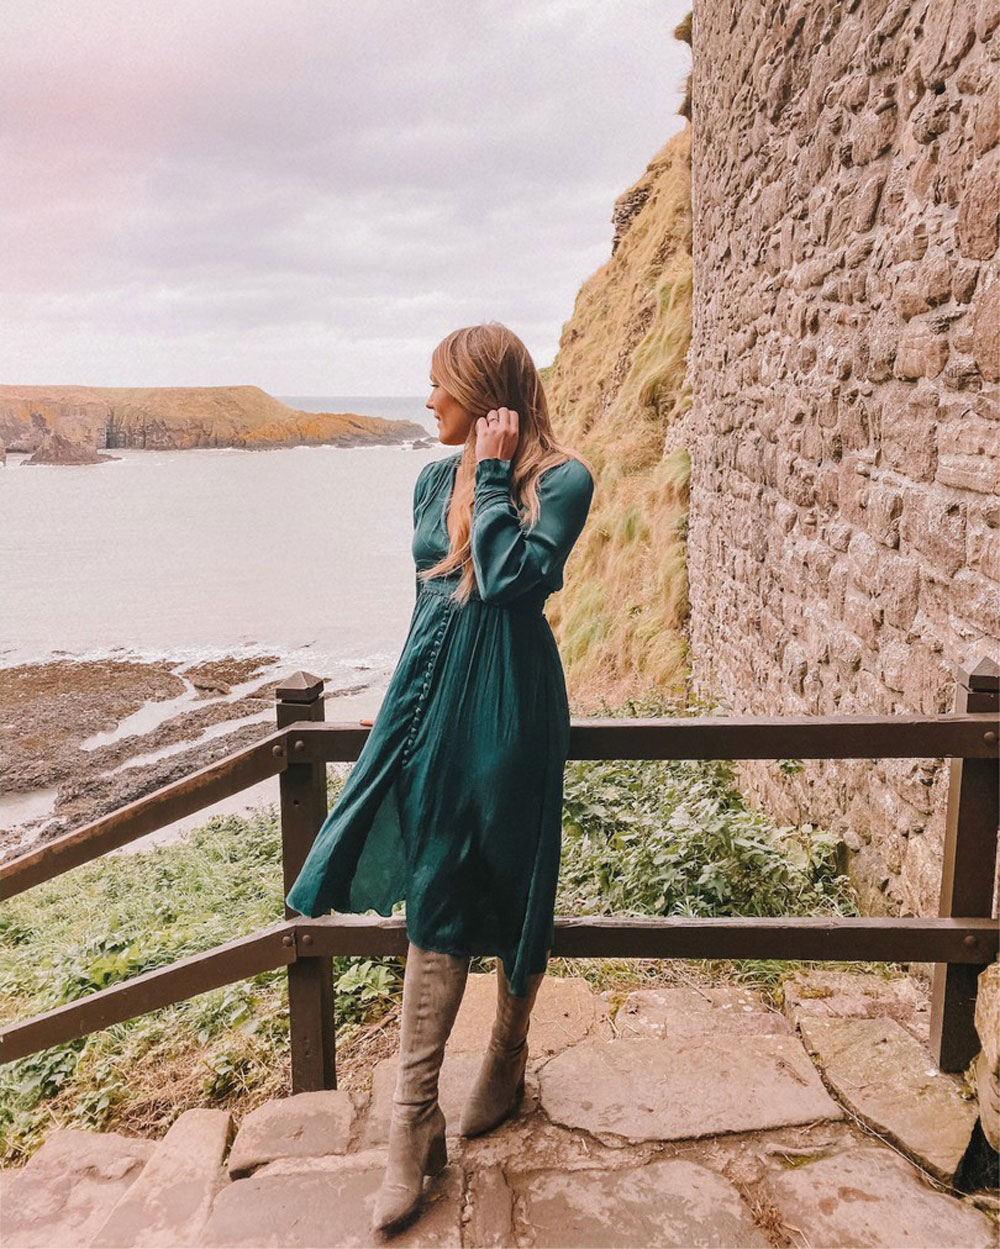 OKC blogger Amanda's OK visits Dunnottar Castle in Scotland